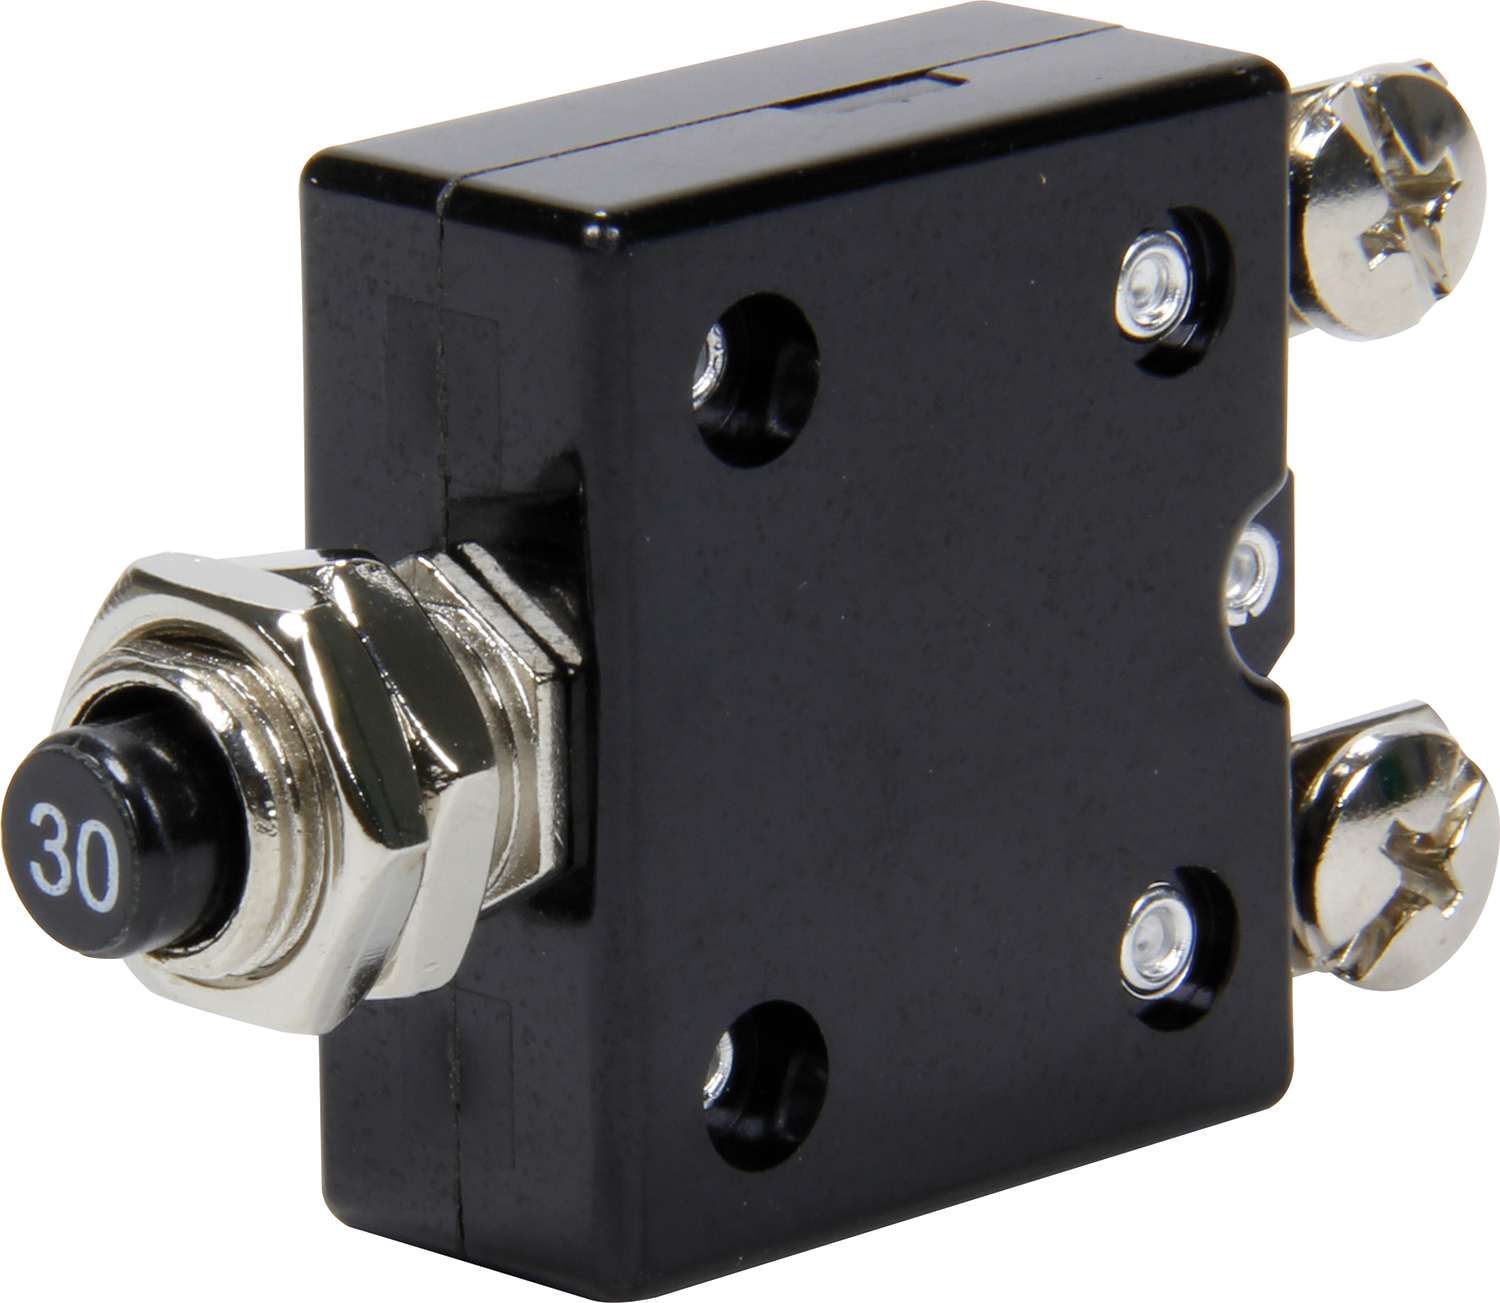 Quickcar Racing Products 30 Amp Resettable Circuit Breaker